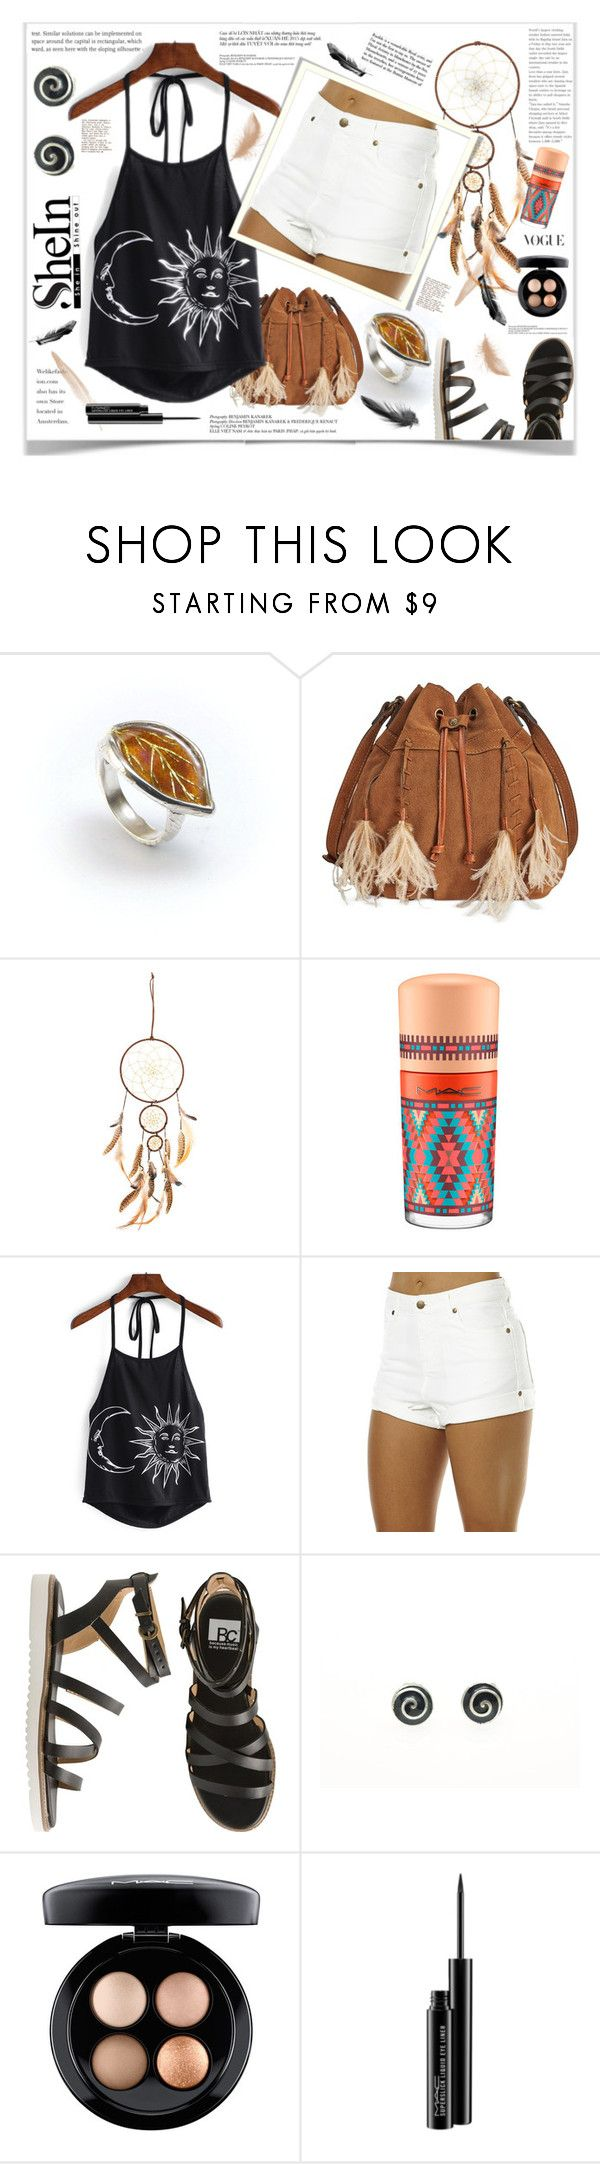 """Moon & sun"" by giampourasjewel ❤ liked on Polyvore featuring Patricia Nash, WALL, MAC Cosmetics, Zulu & Zephyr, BC Footwear, sushi, crazyforfashion and shein"